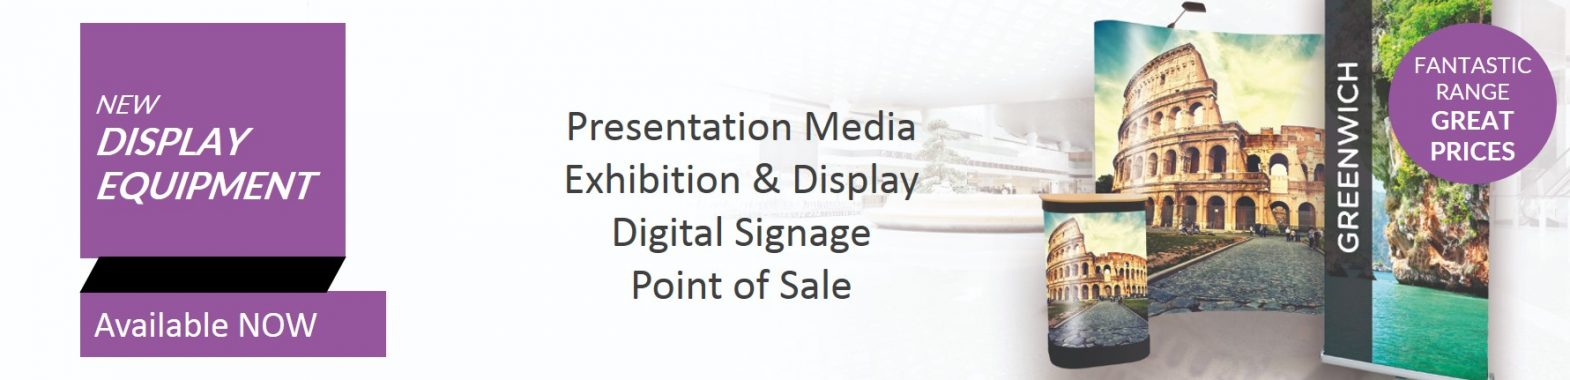 ew Display Equipment Banner